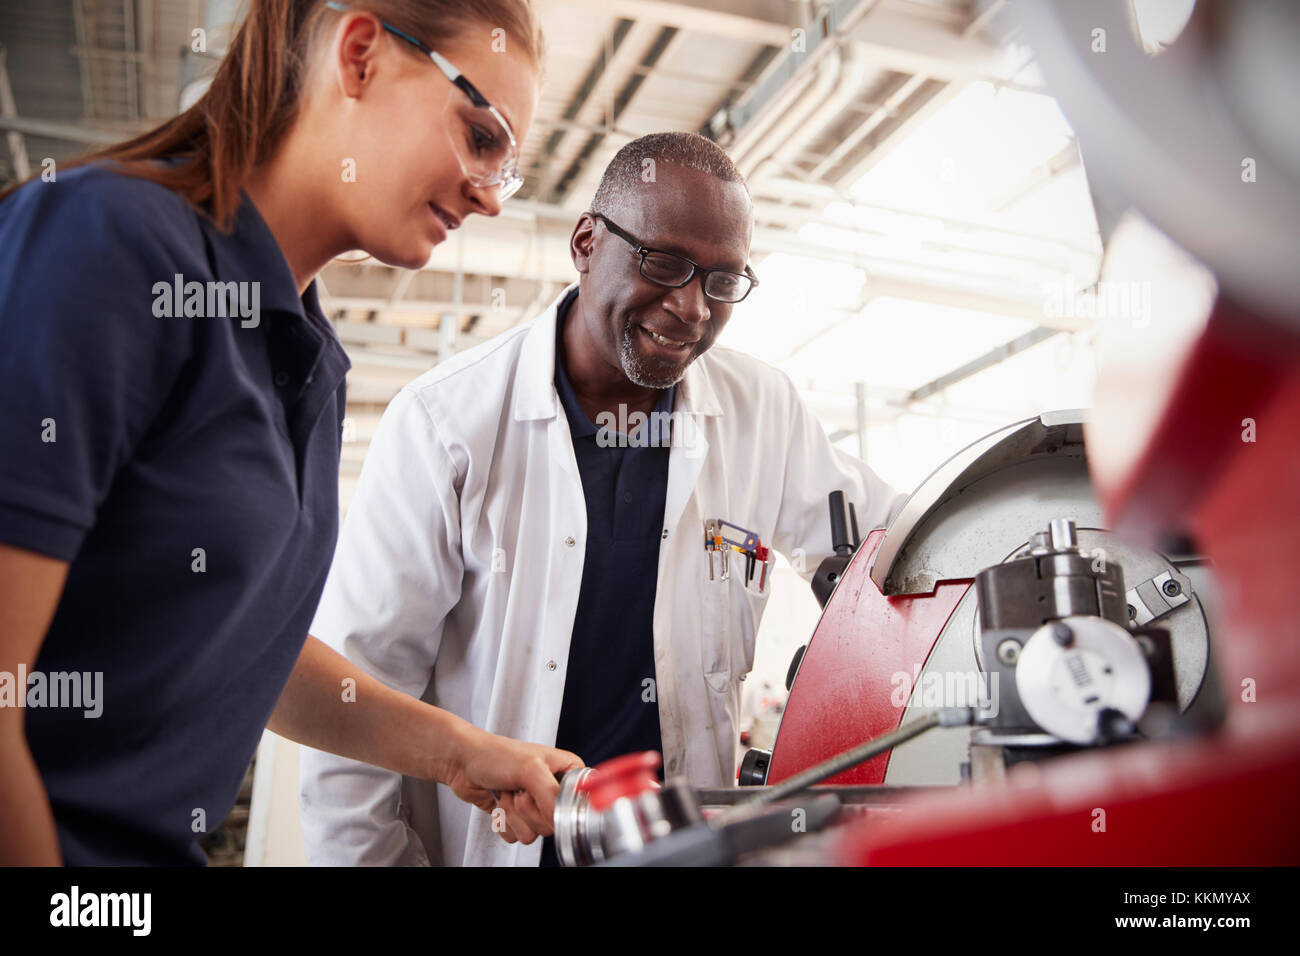 Engineer showing female apprentice how to operate machinery, close up - Stock Image